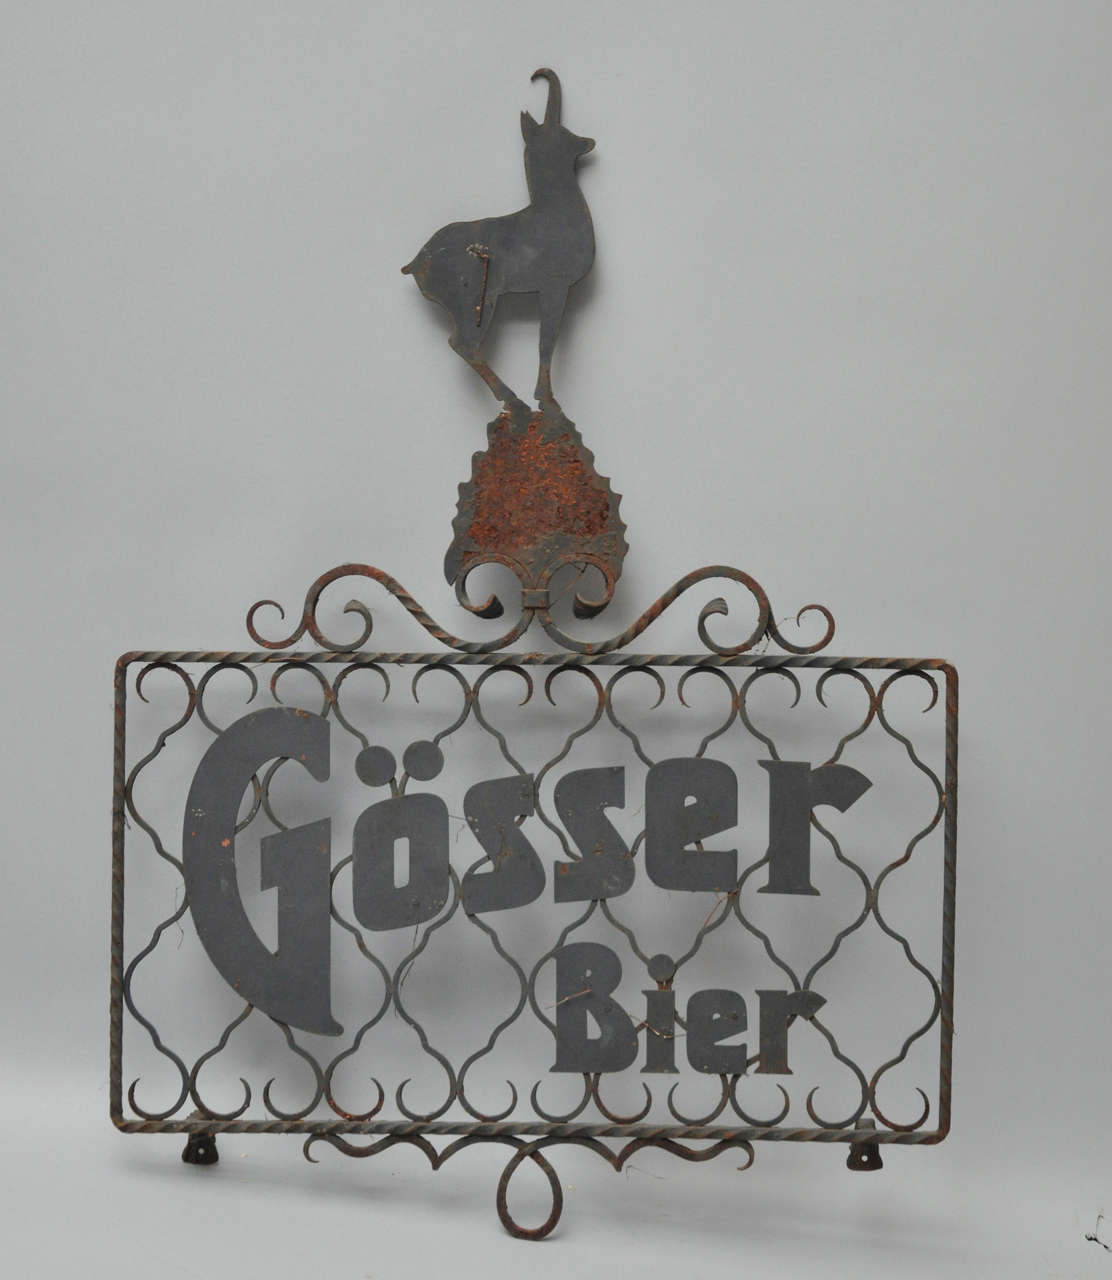 Austrian wrought iron Gösser beer sign from the turn of the 20th century. Rectangular shaped frame with Gösser Bier logo amidst scrolled background, surmounted by a graceful stylized stag ornament. Gösser Bier is not only one of the best brands of